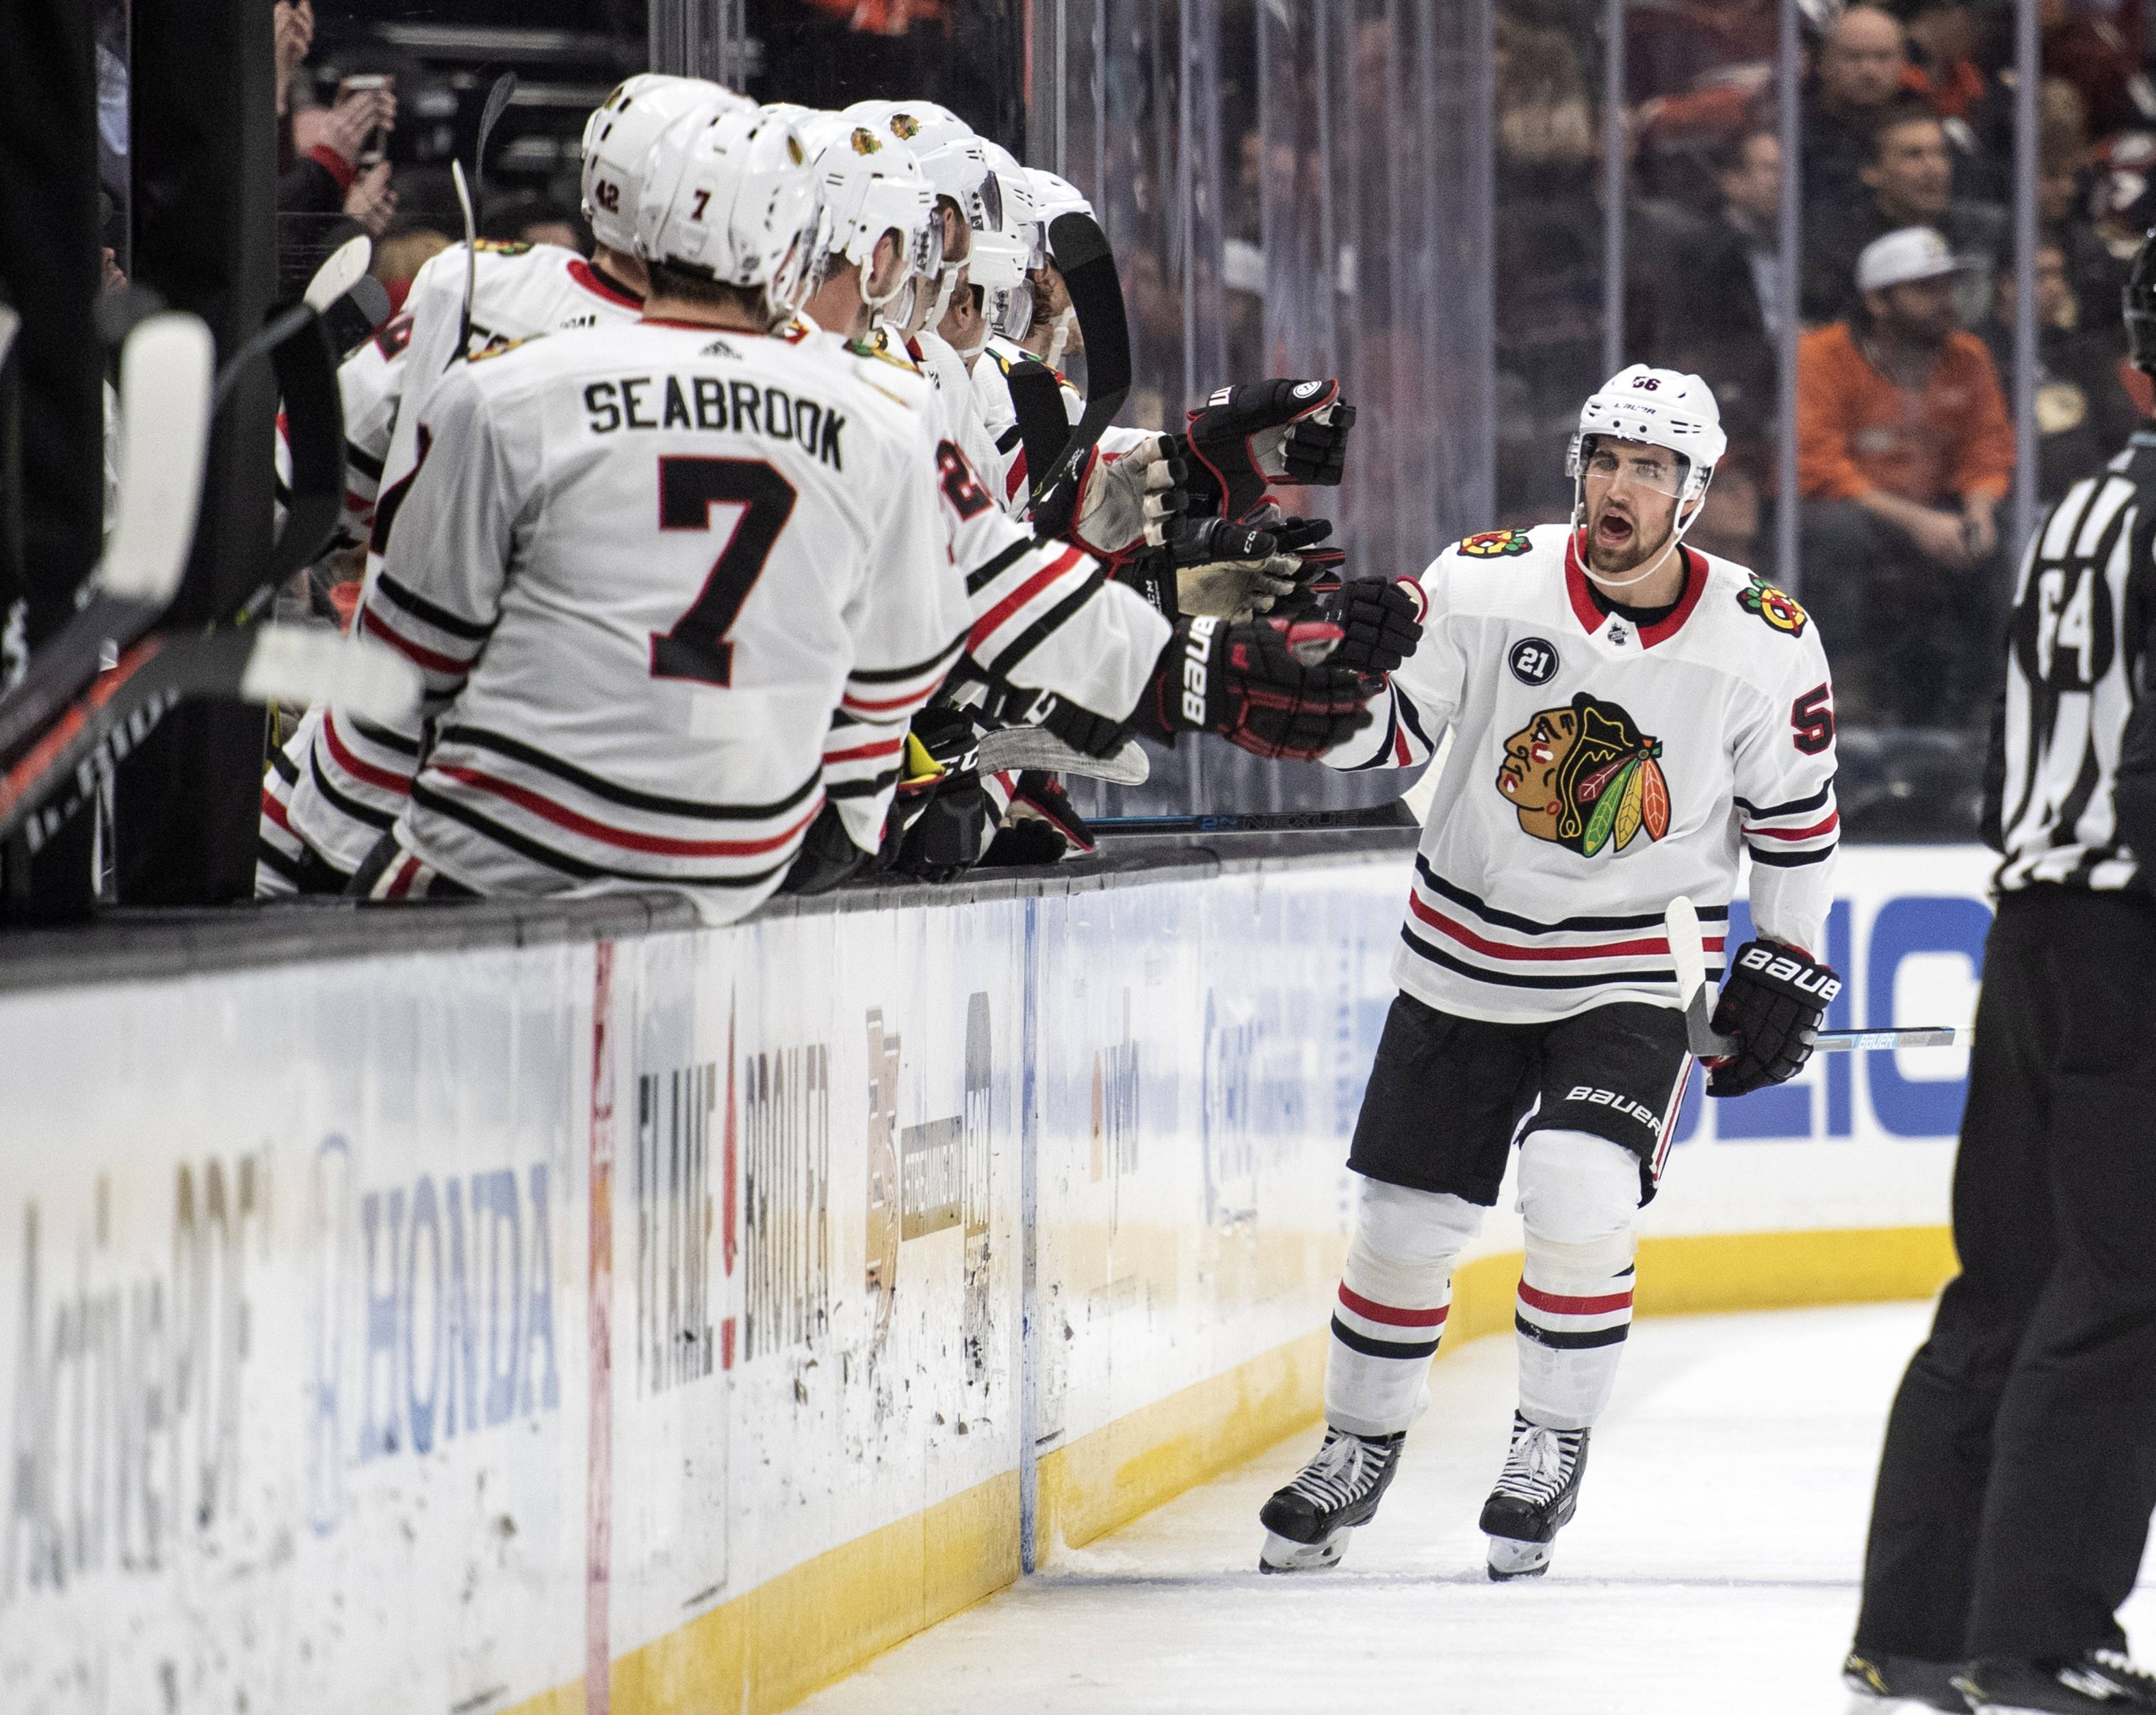 Chicago Blackhawks defenseman Erik Gustafsson has recorded an assist in eight straight games. Gustafsson is now just two games shy of tying Pierre Pilote's franchise record for most assists in consecutive games.